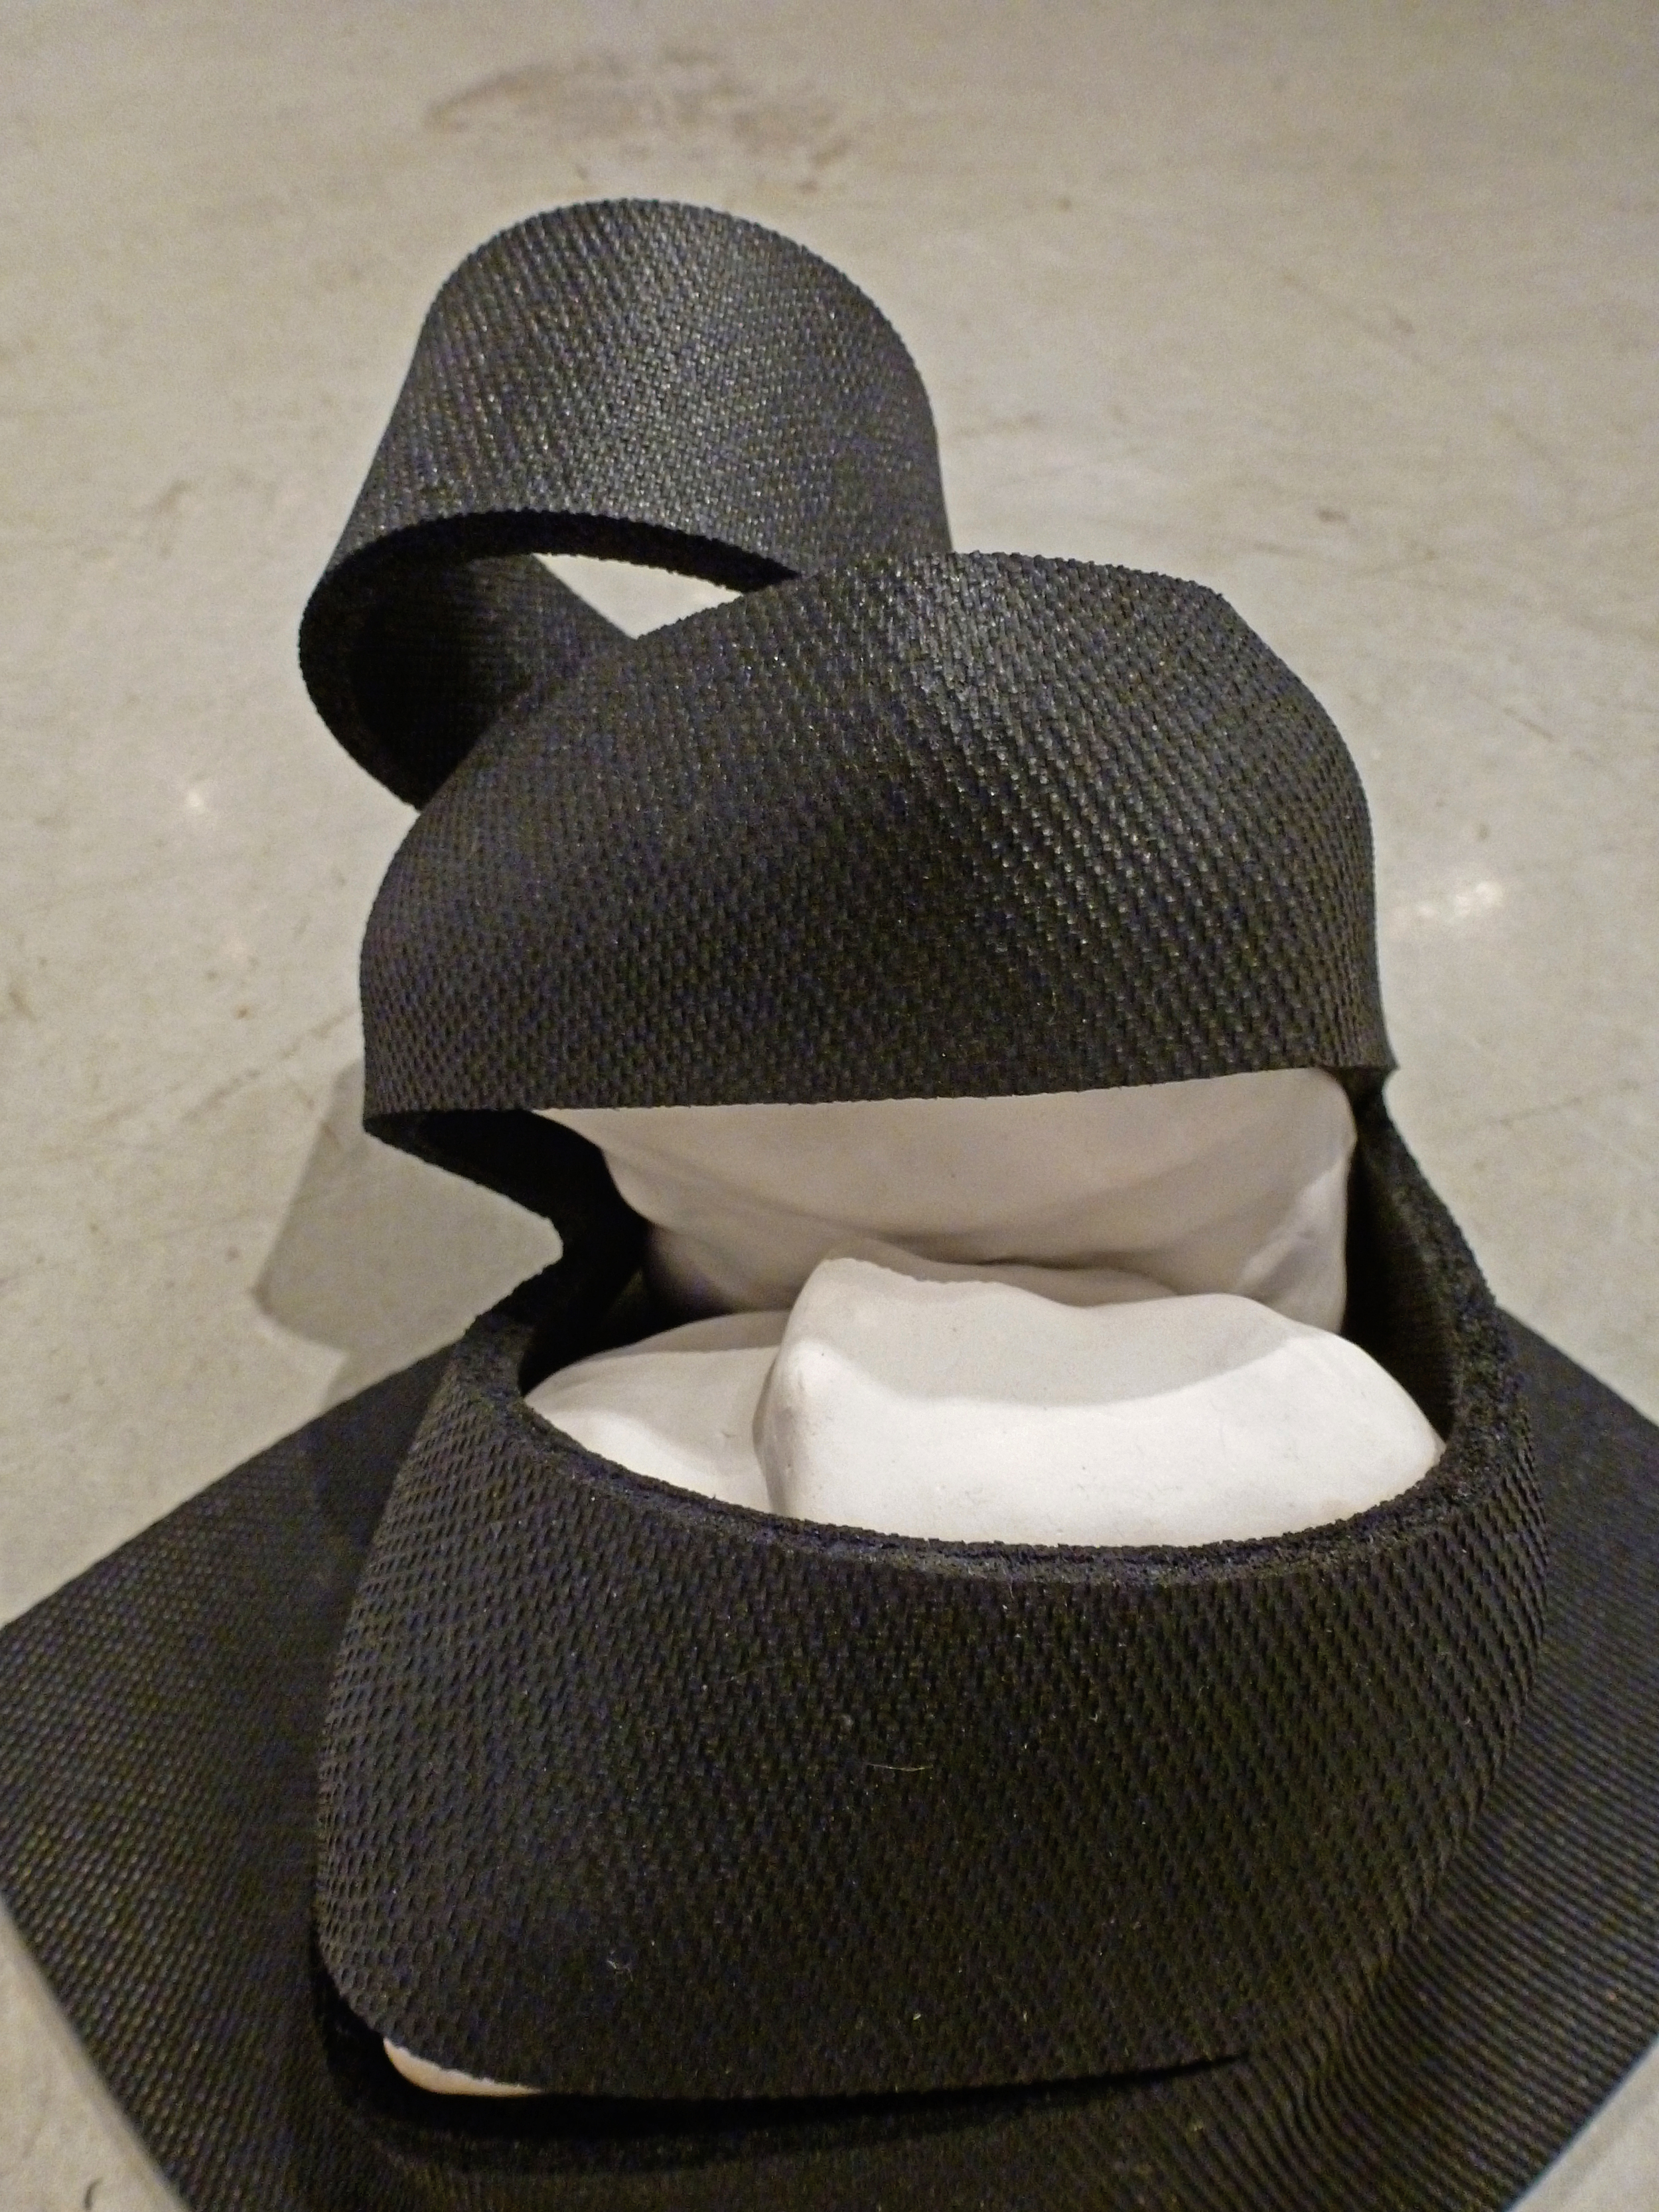 Untitled  (Rubber Slit)  detail, 2013